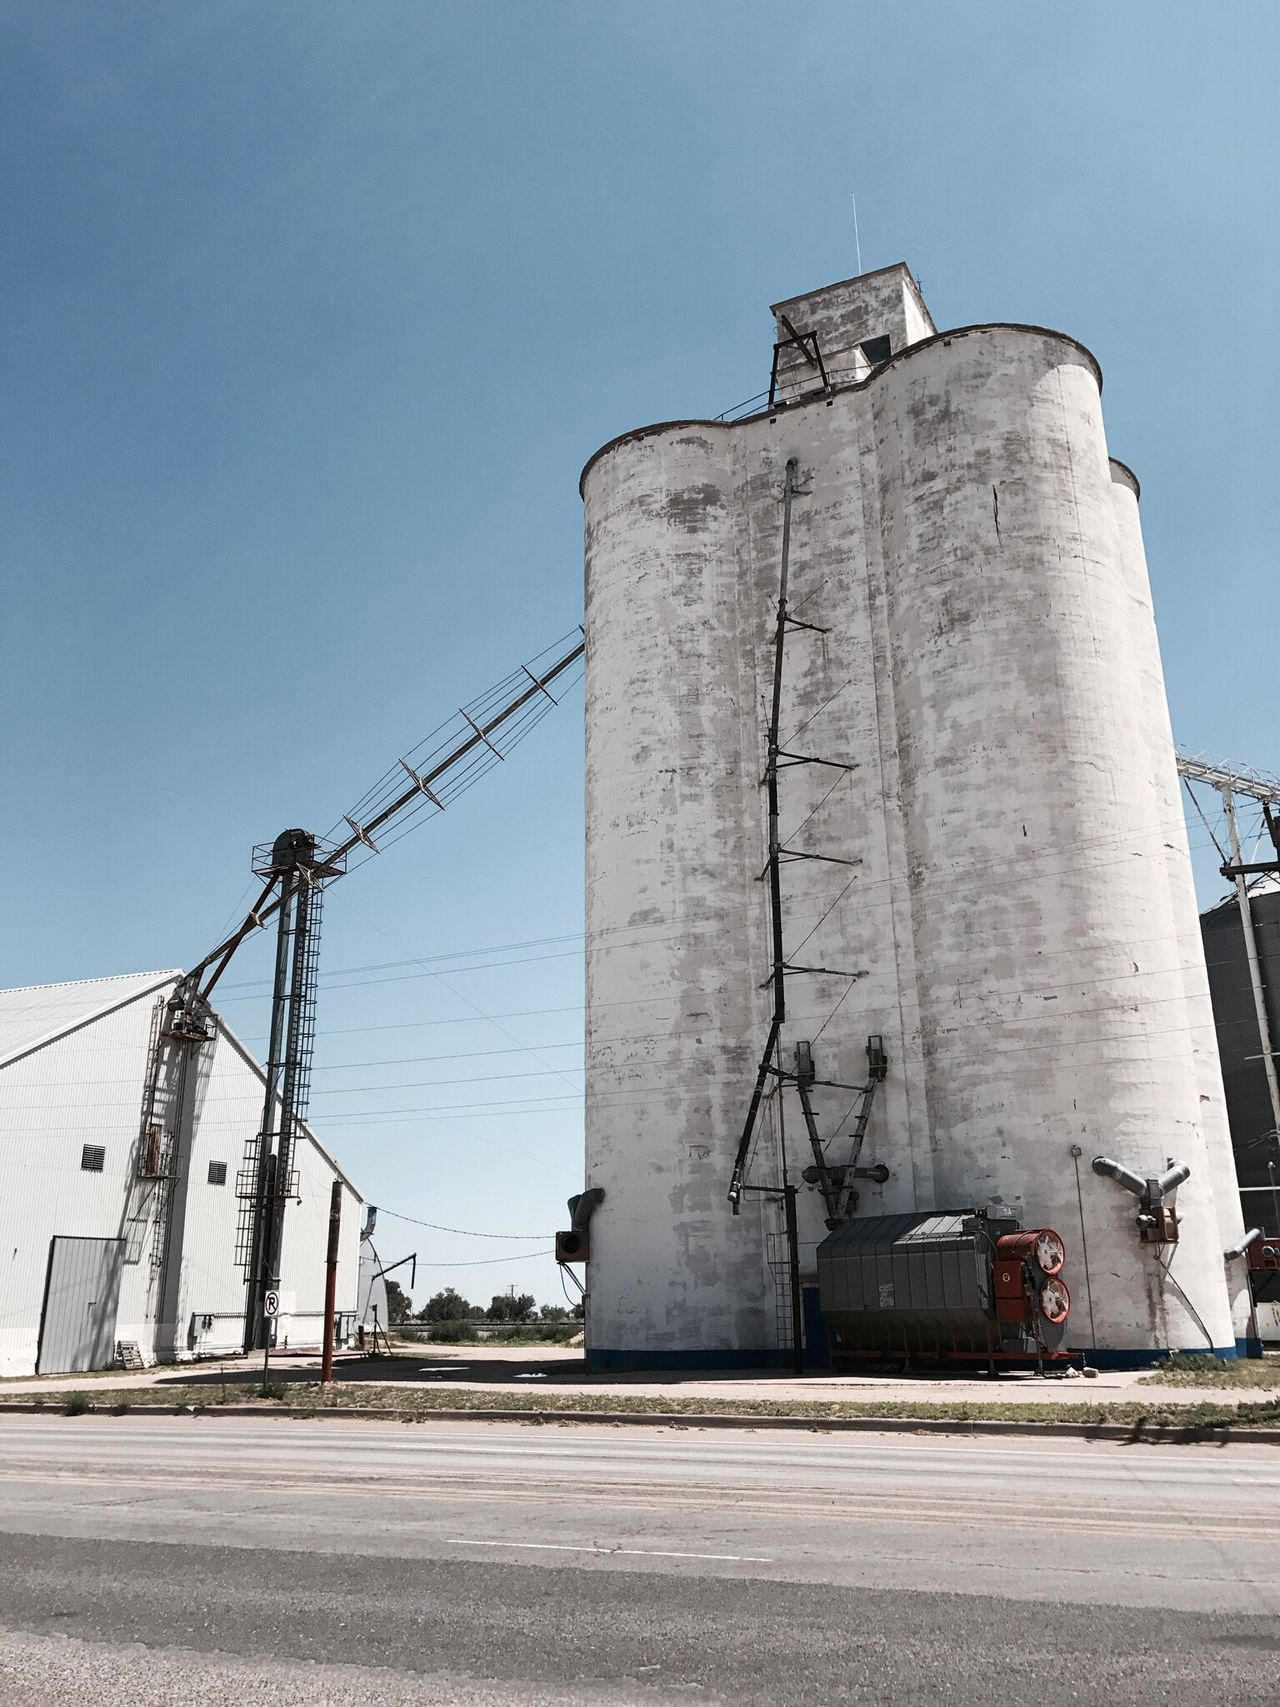 """""""Lone Silo"""" A massive silo, still in use, dominates a tiny village along Route 60 in New Mexico. Industry Architecture Silo Storage Tank Industrial Building  New Mexico Newmexicophotography Route 60 Silos Farming Travel Photography Historical Place"""